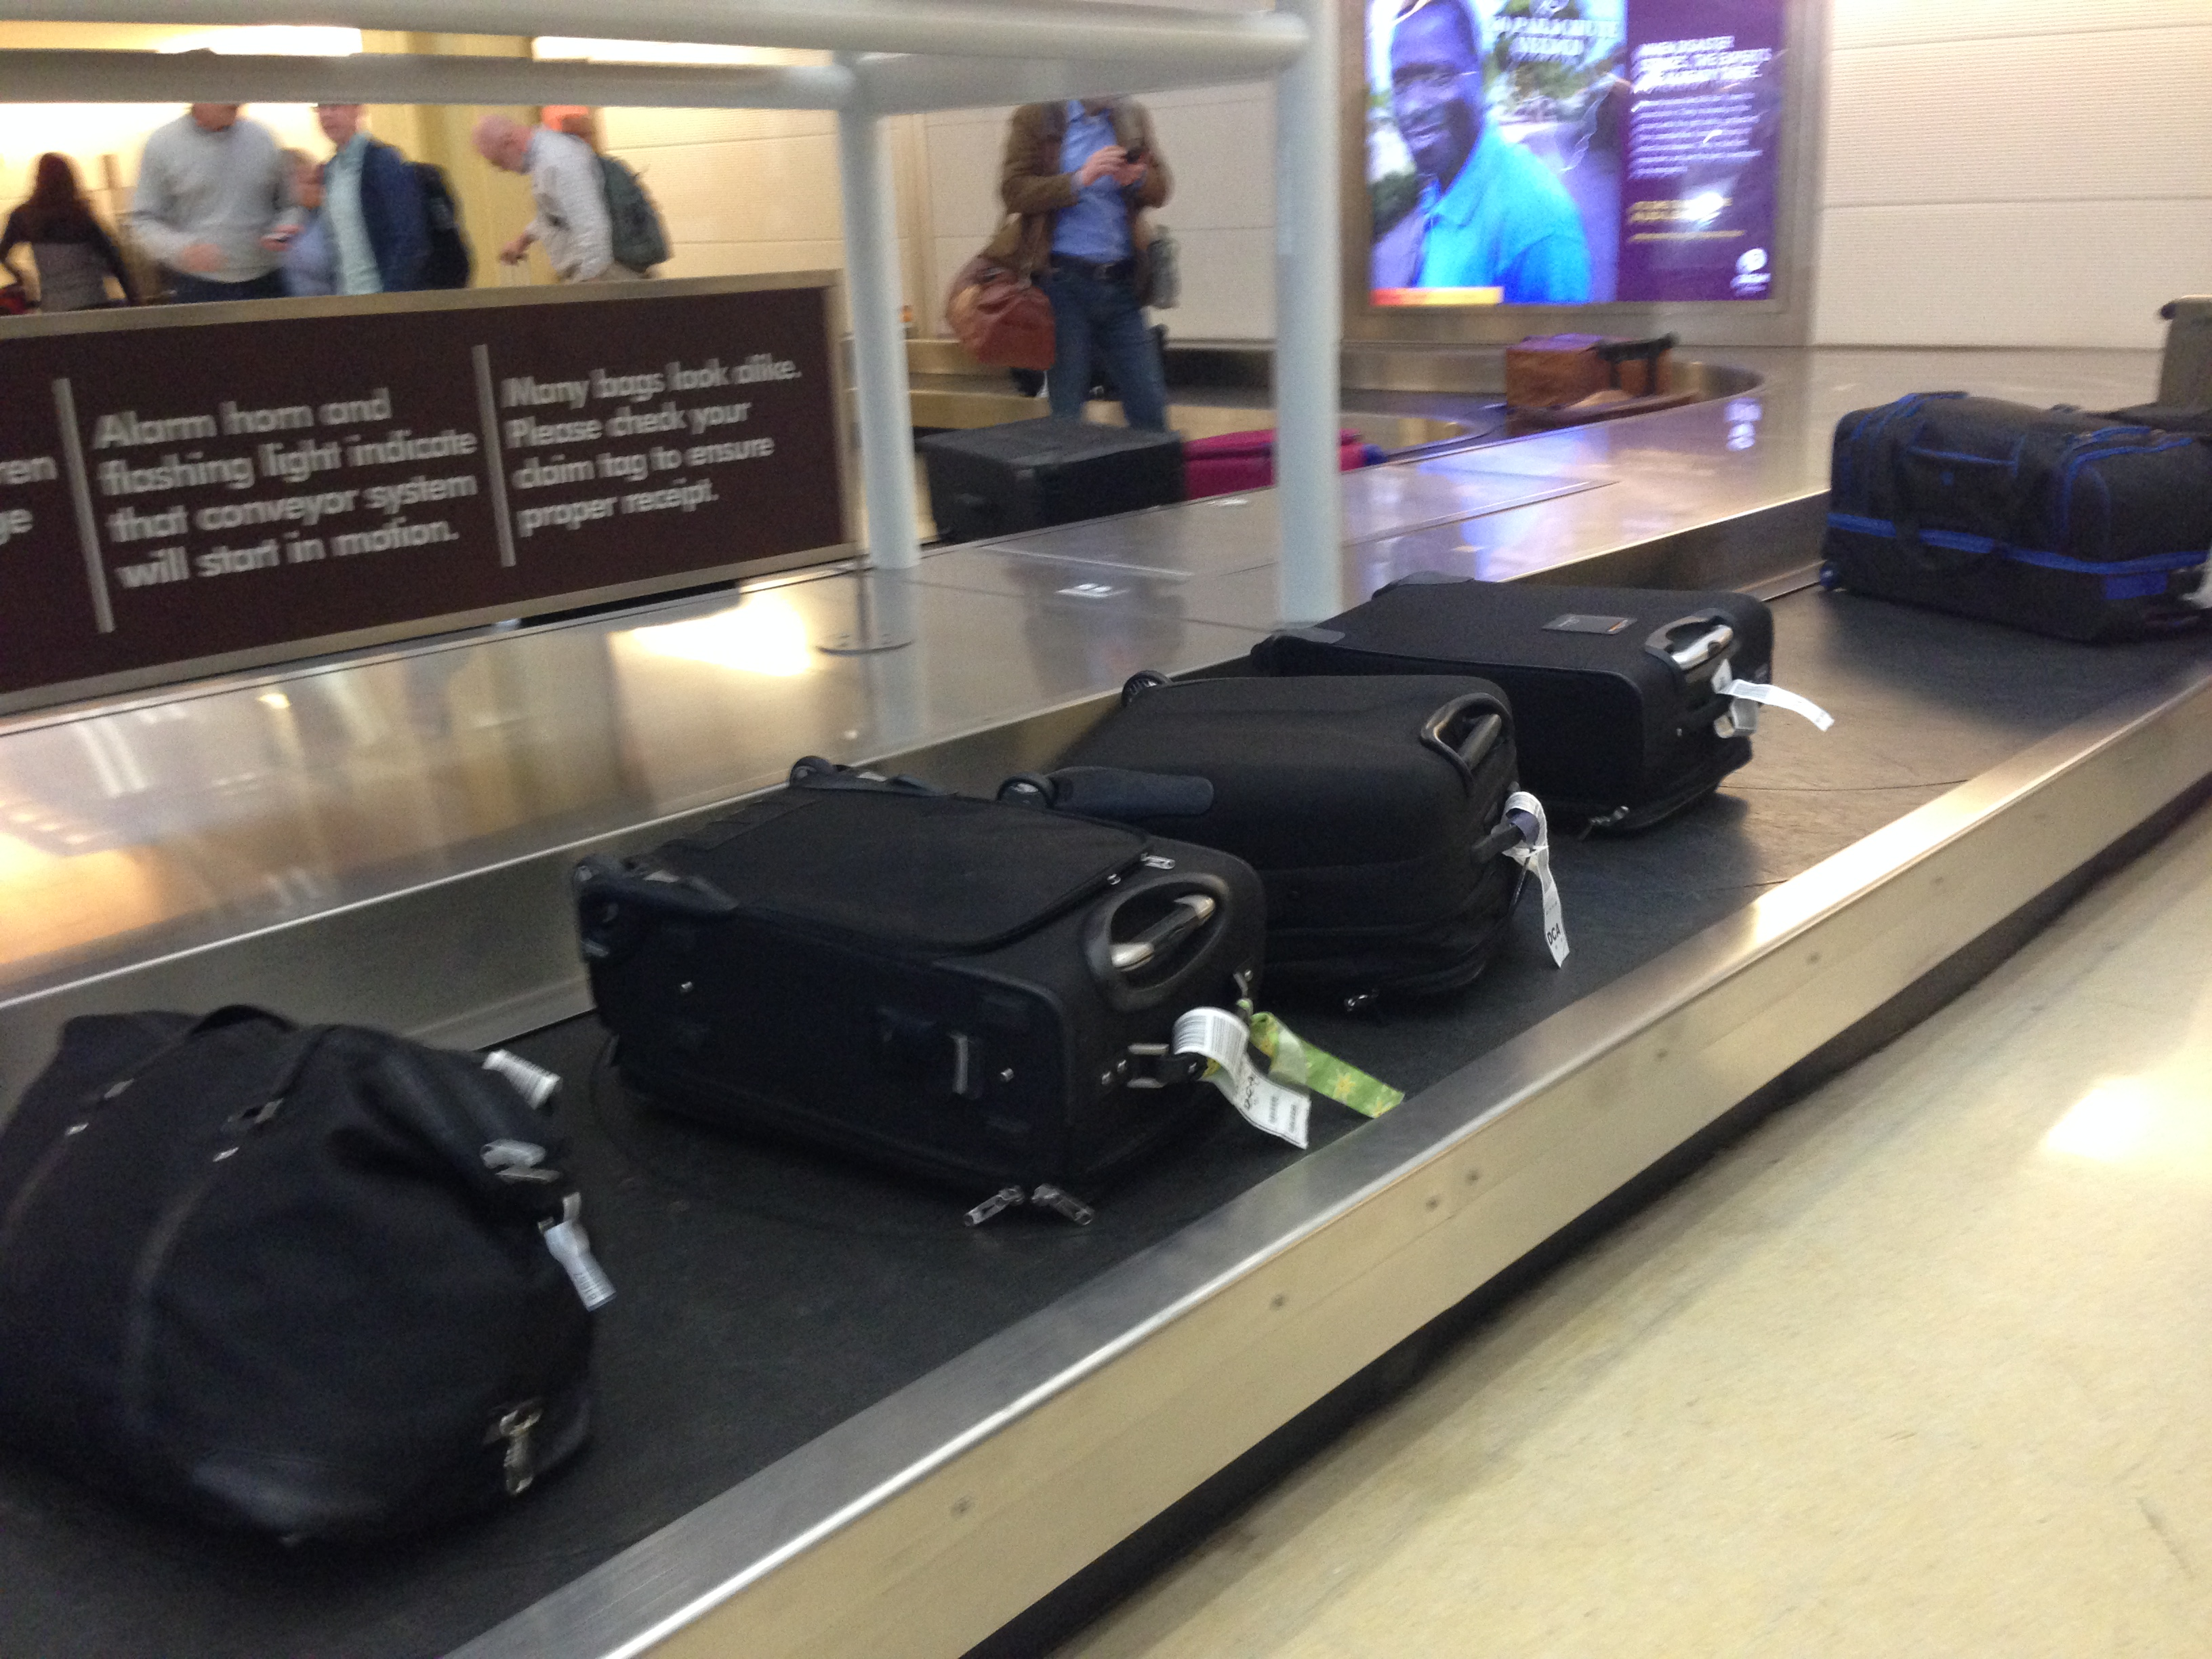 Luggage on Conveyor Belt Copyright Shelagh Donnelly